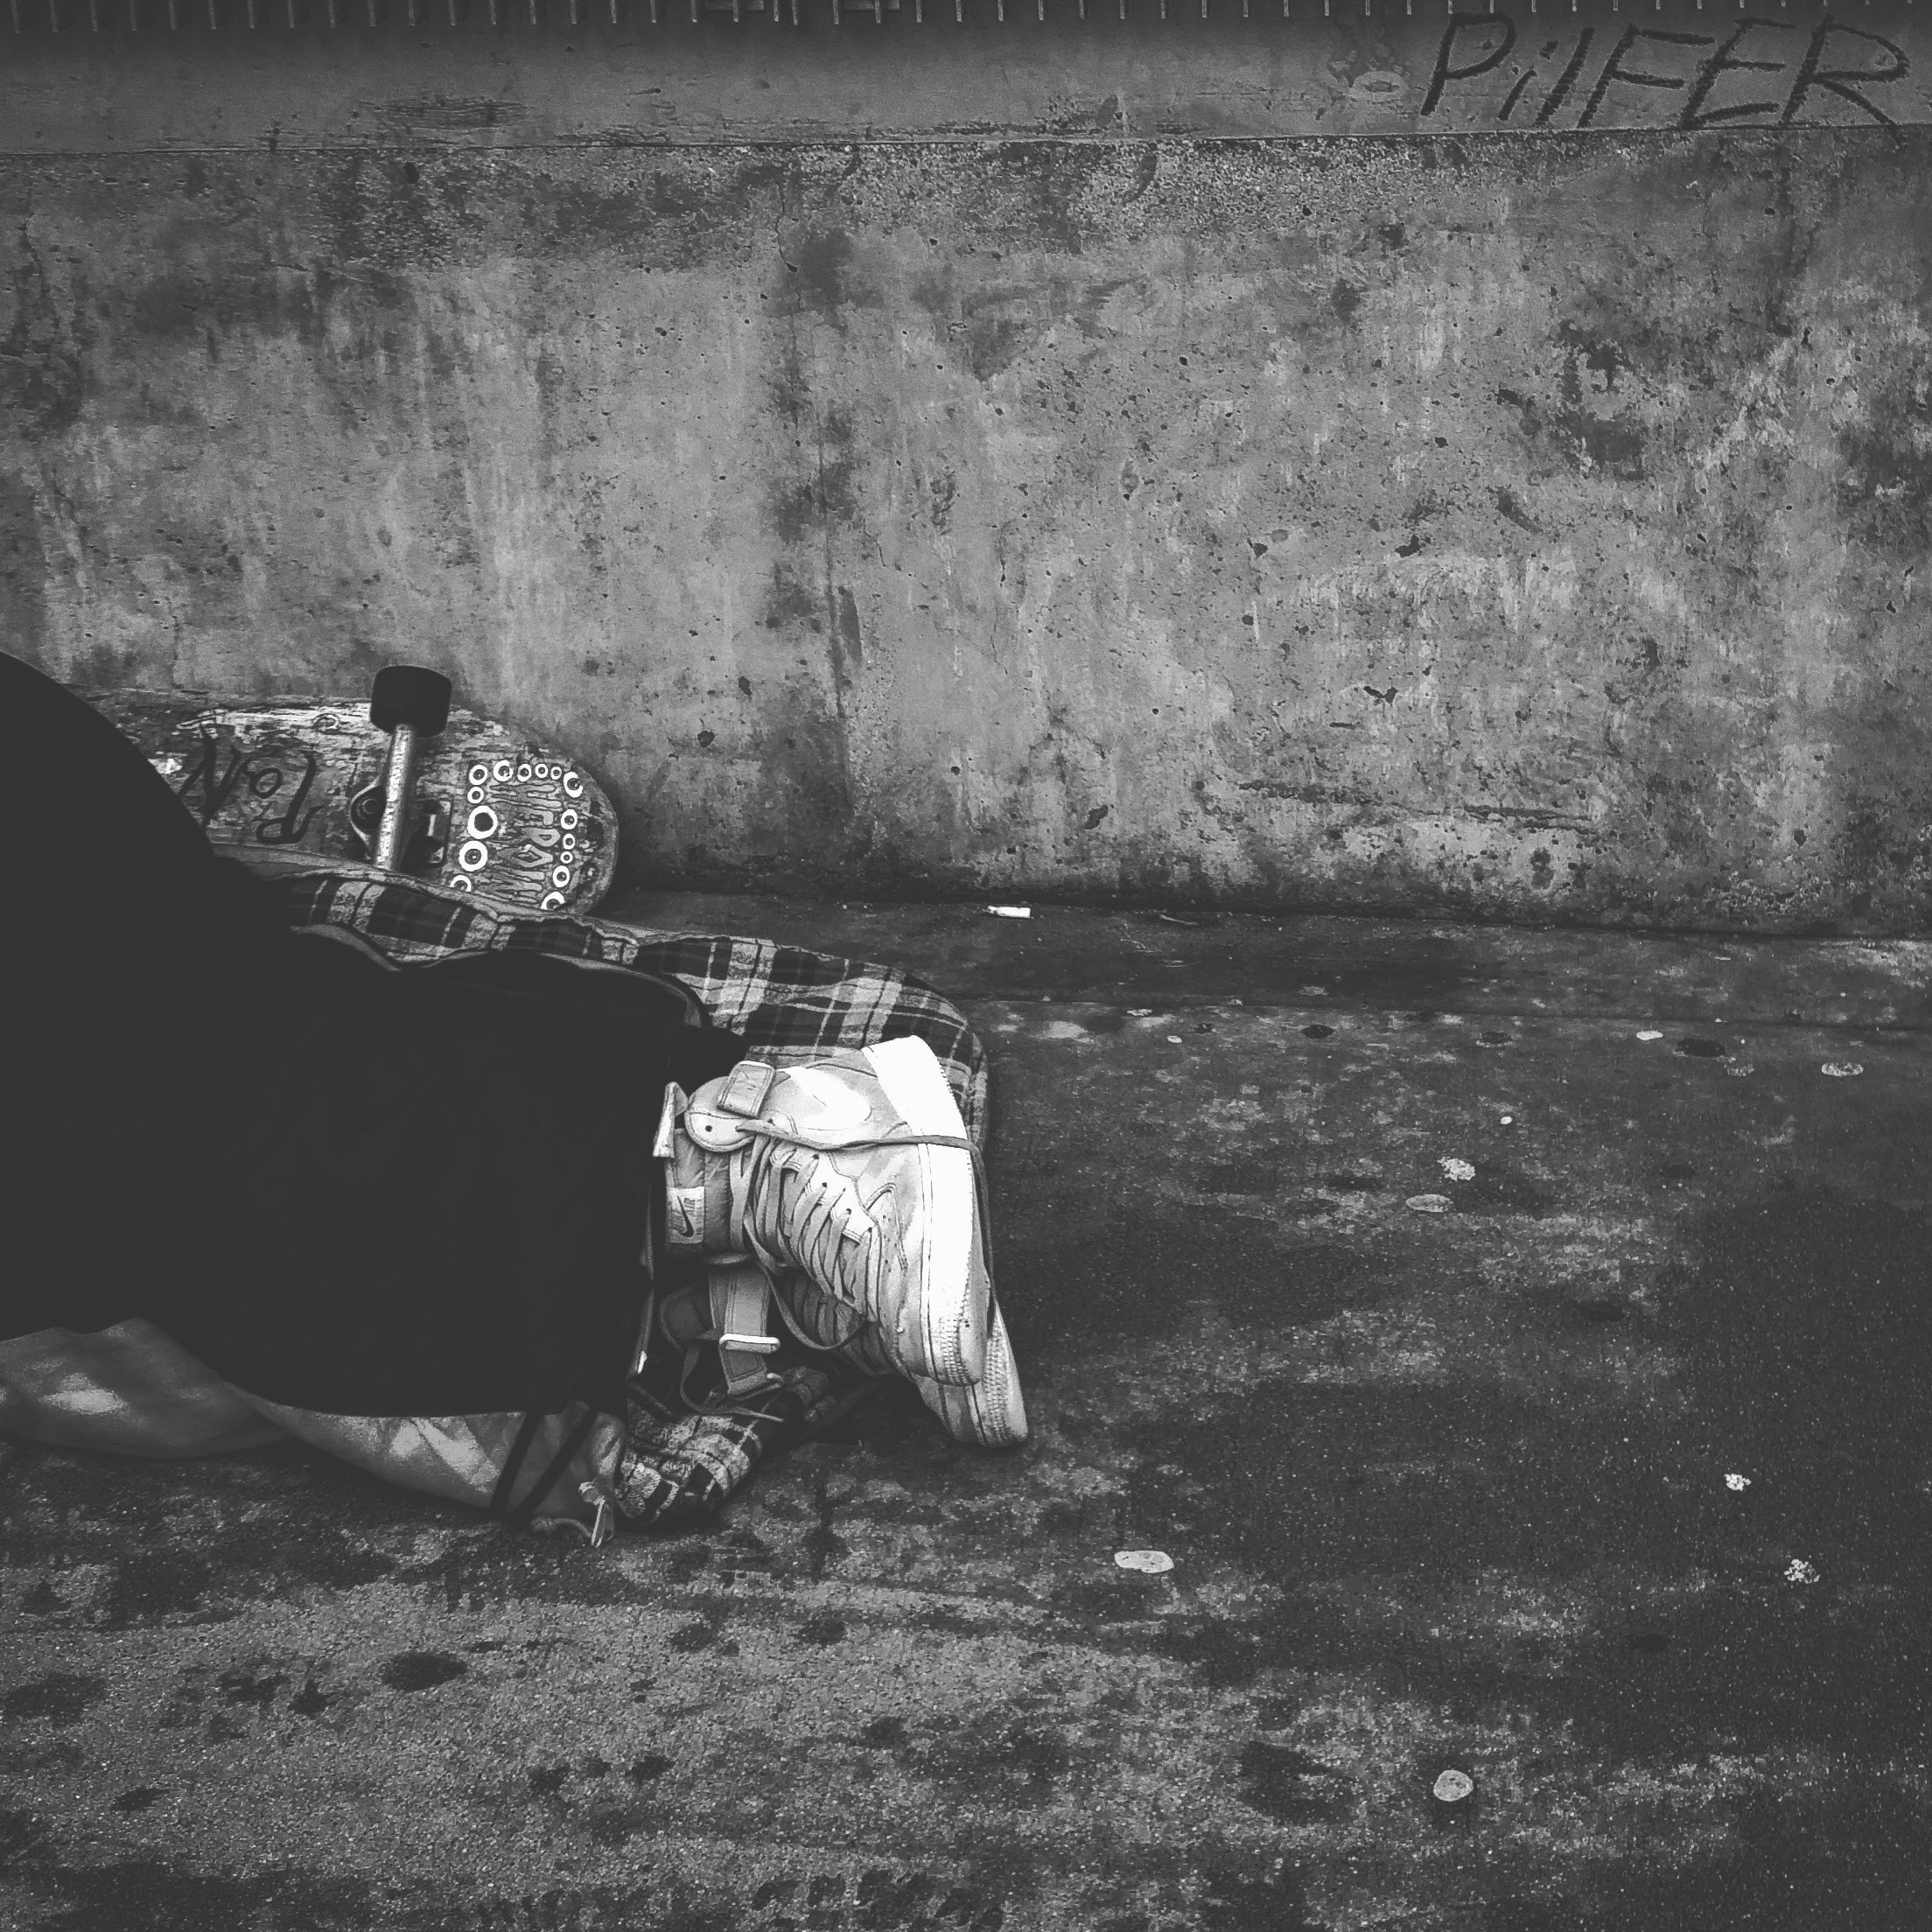 A person wearing white high-top sneakers laying on the ground. Photo courtesy of Taufiq Klinkenborg on Pexels.